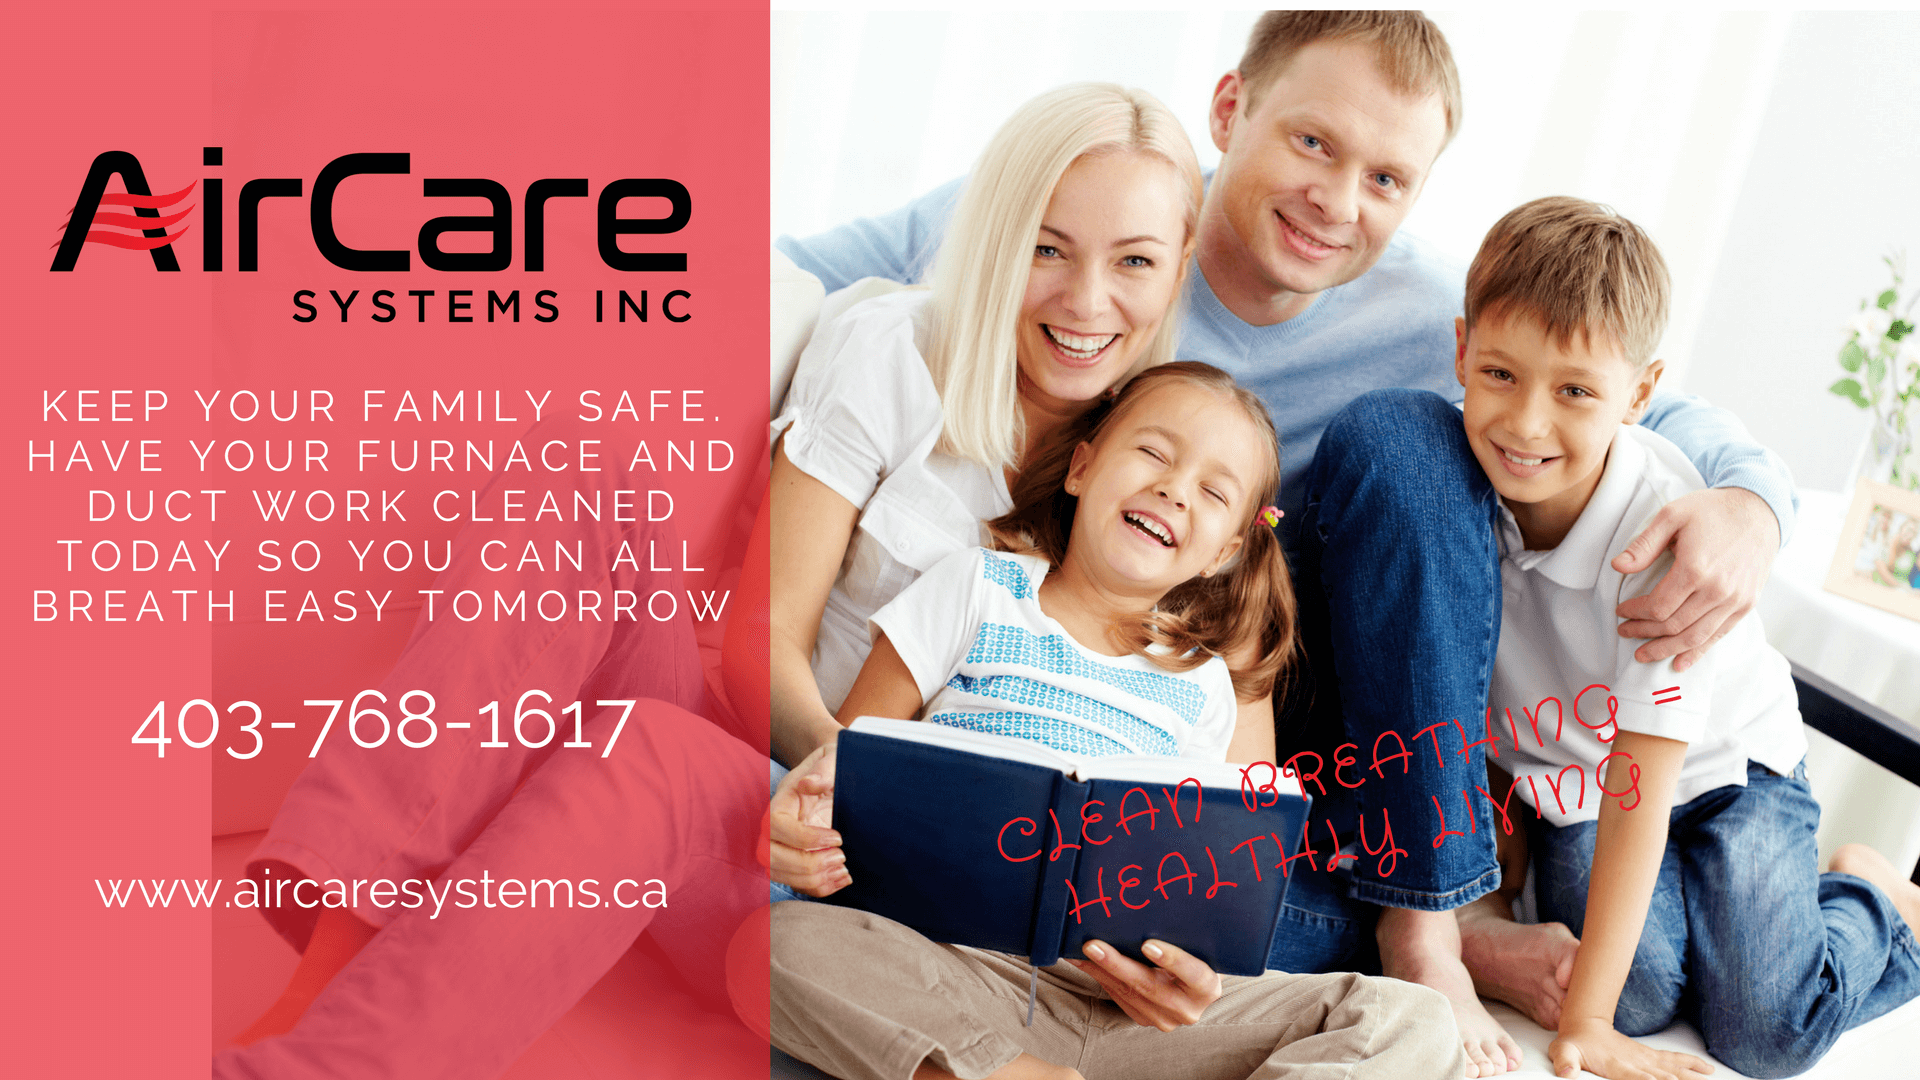 CALGARY FURNACE AND DUCT CLEANERS